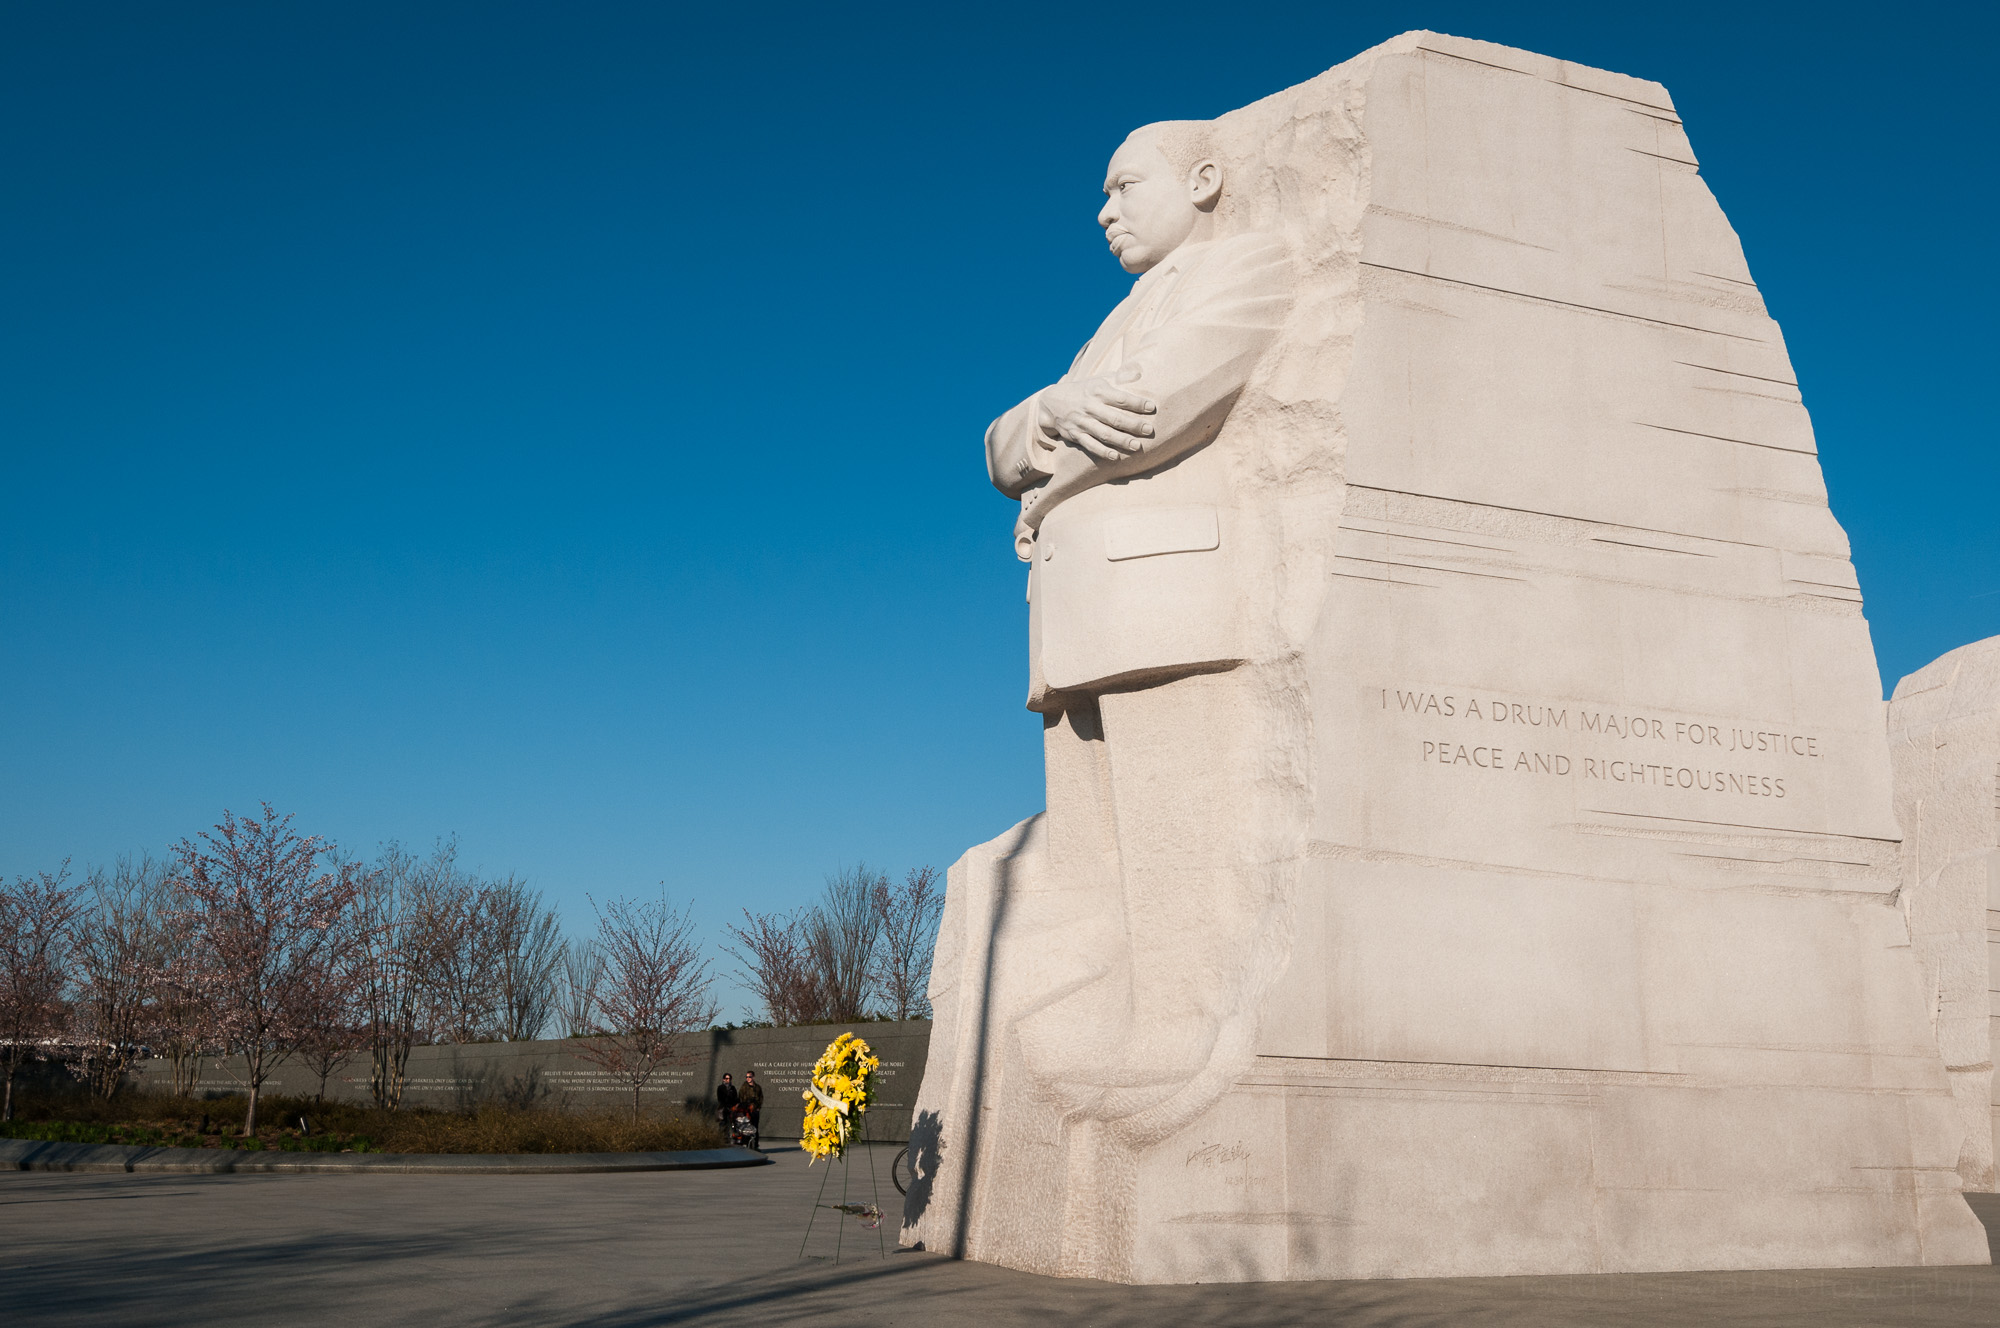 Martin Luther King, Jr. Memorial with yellow wreath and controversial drum major quote